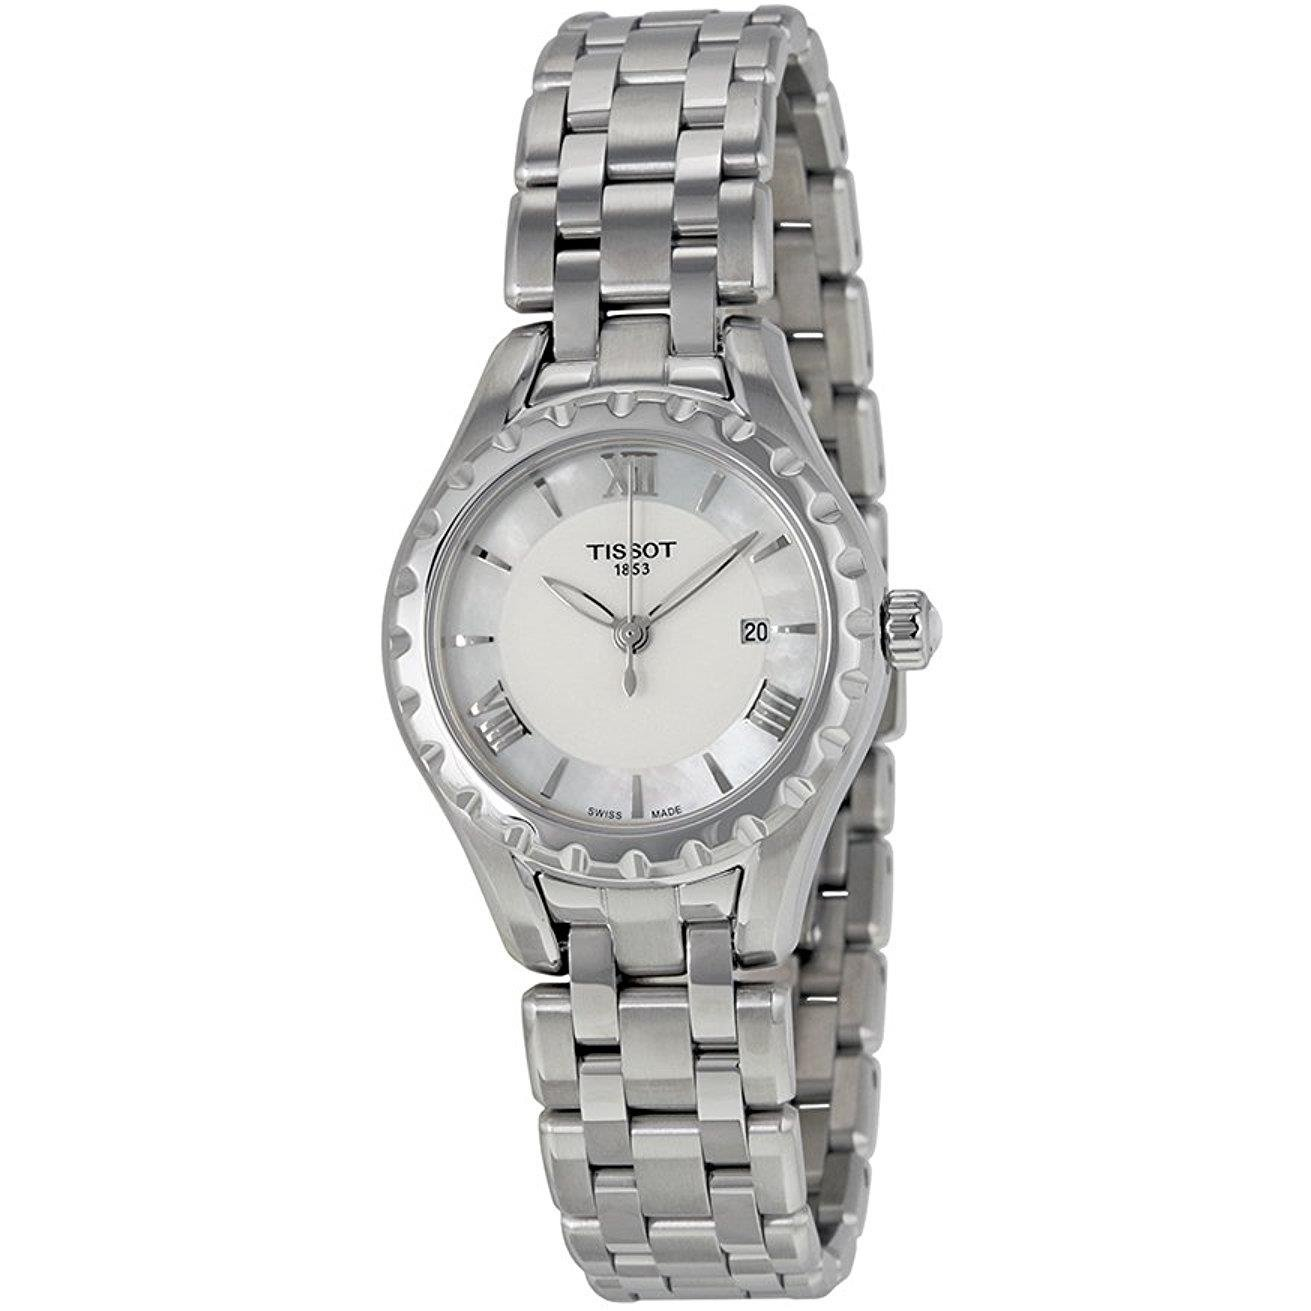 Tissot Lady Silver Dial Stainless Steel Ladies Watch T0720101111800